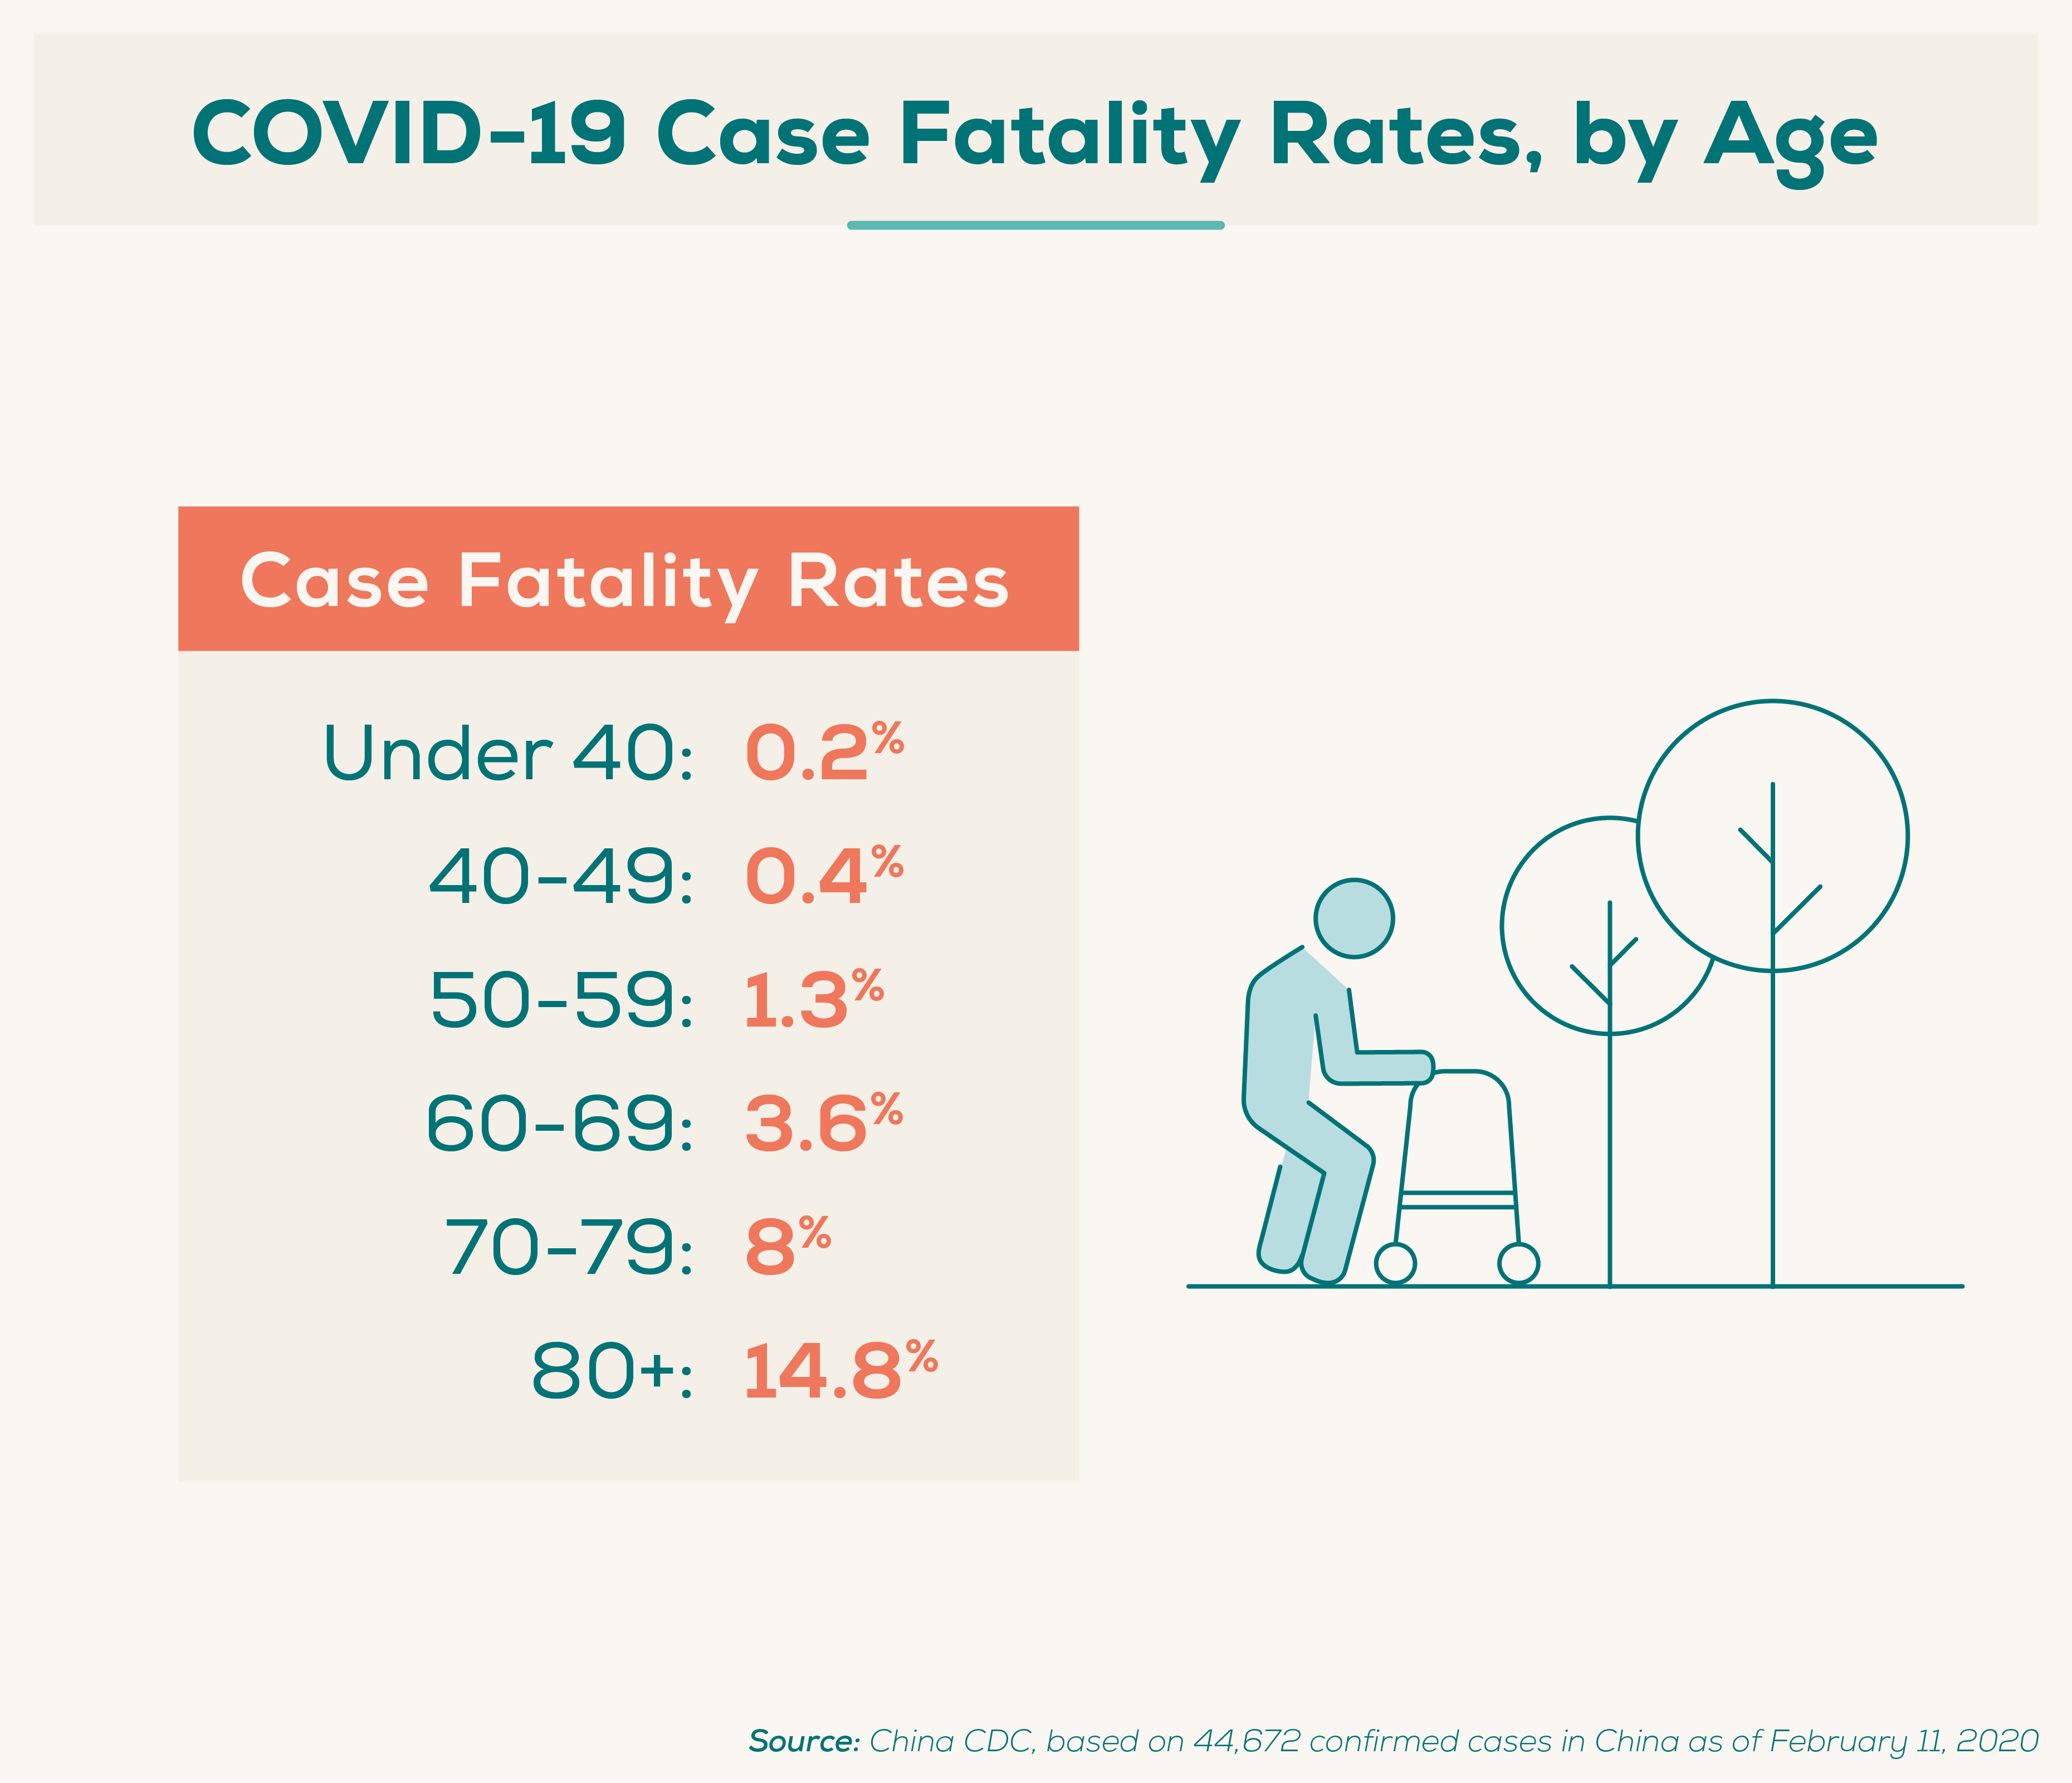 COVID-19 Case Fatality Rates, by Age